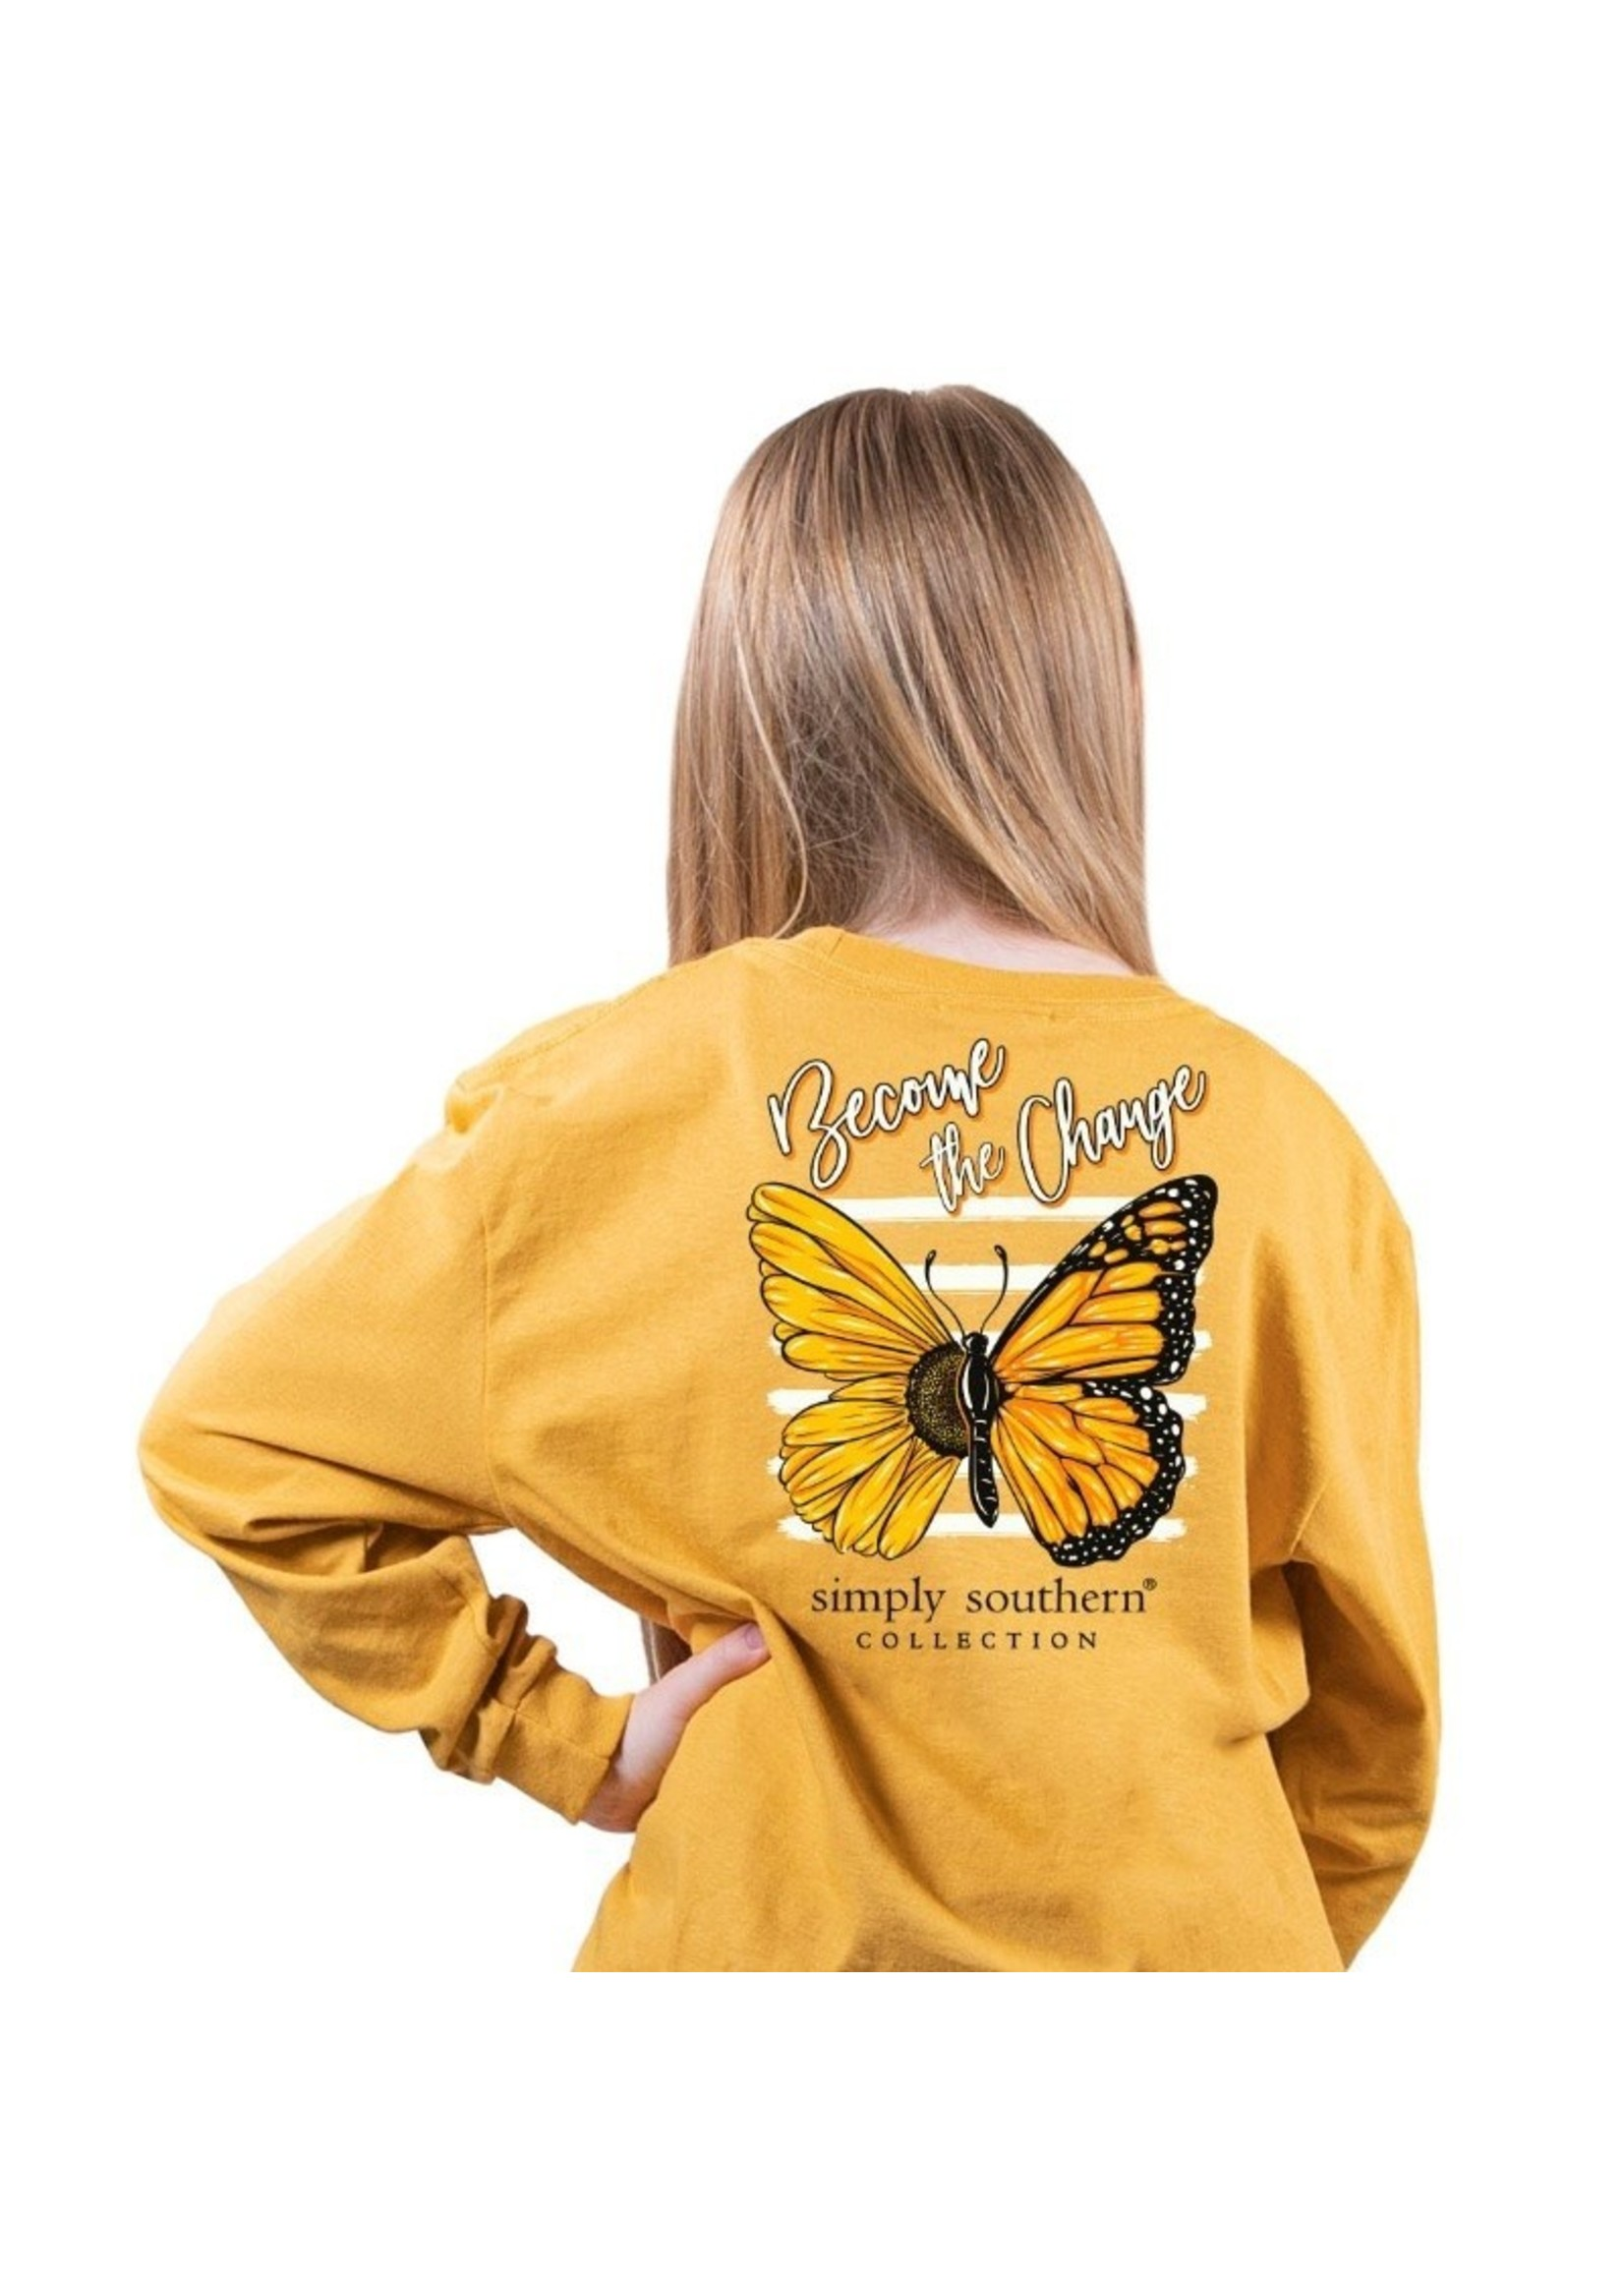 Simply Southern Collection YOUTH Become The Change Long Sleeve Tee